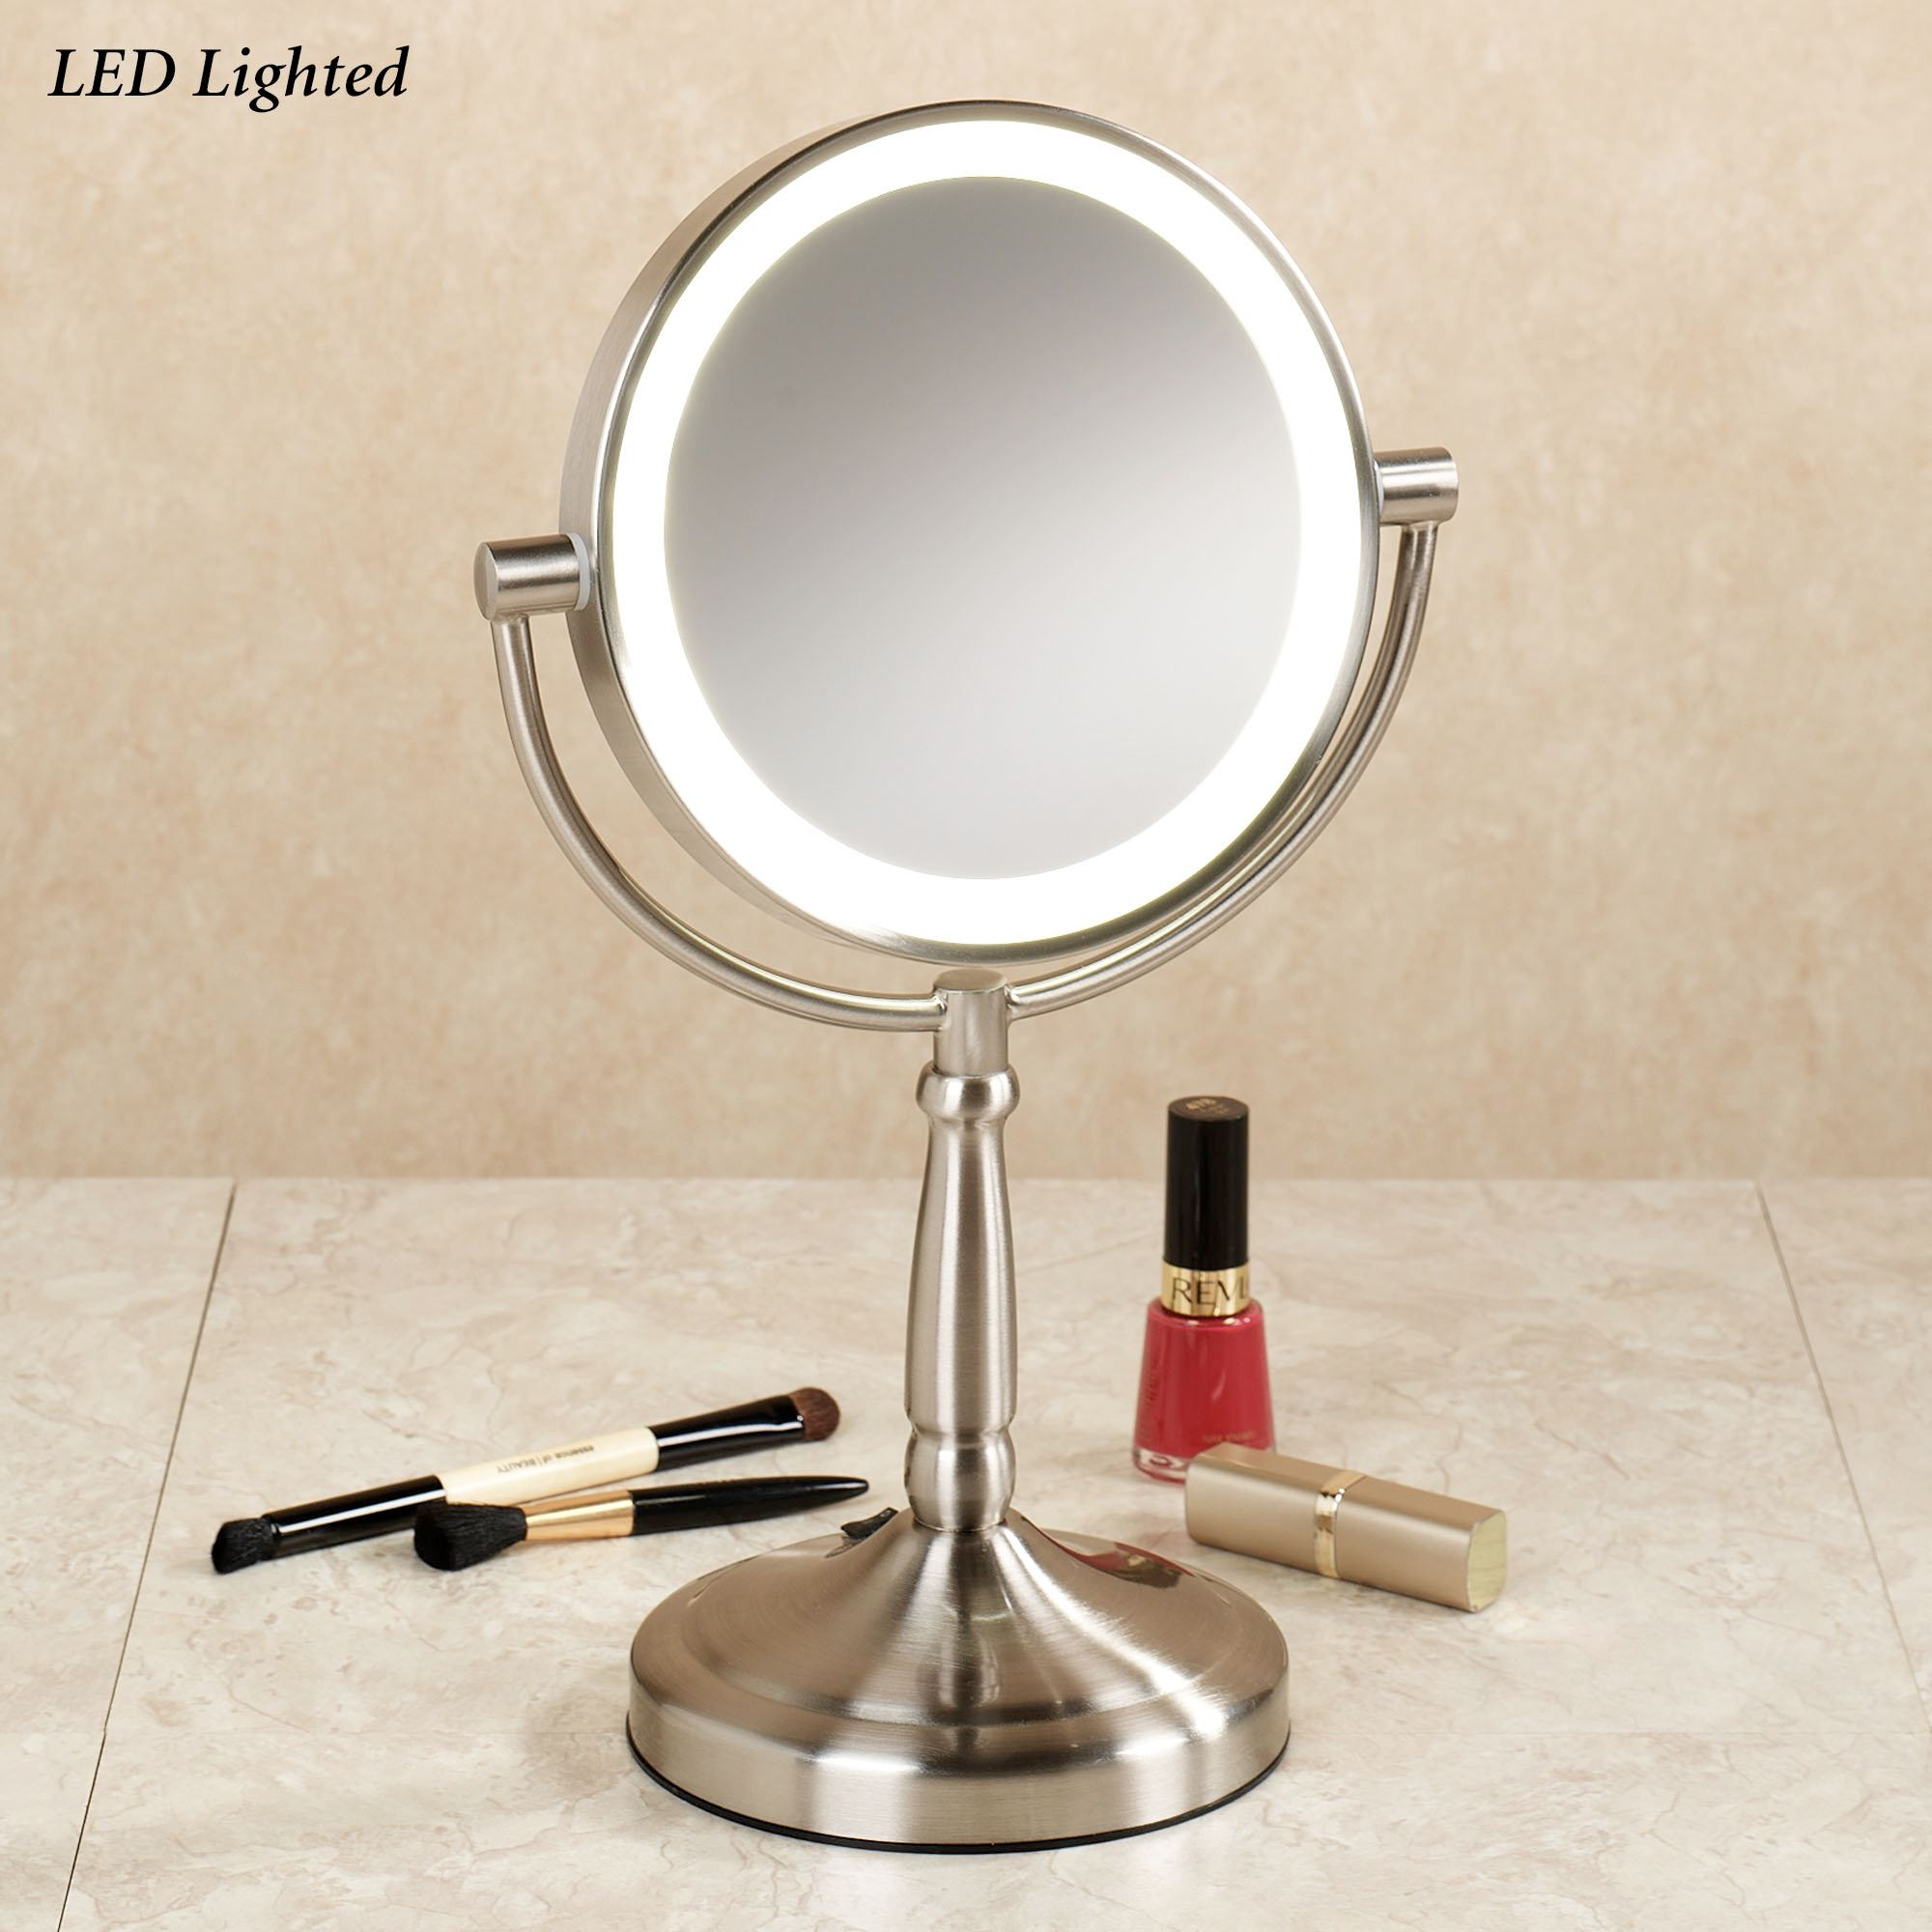 Conair Makeup Mirror Light Bulb | Conair Lighted Makeup Mirror | Double Sided Lighted Makeup Mirror